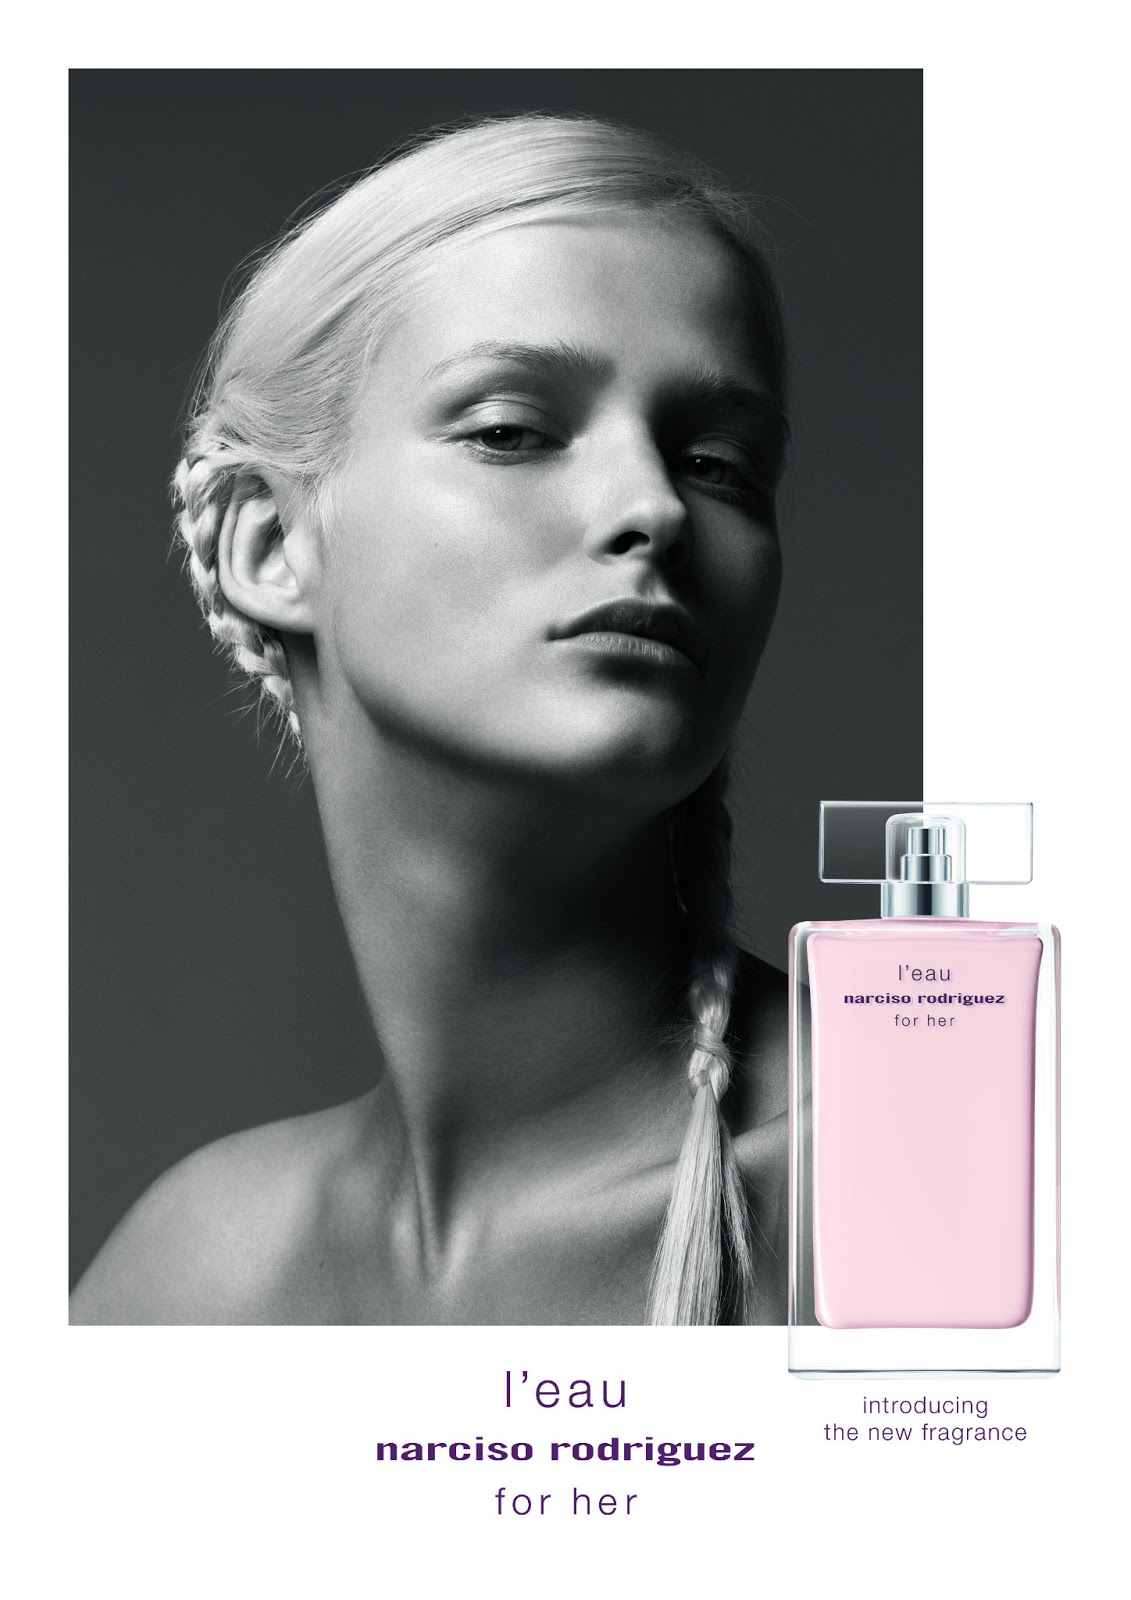 narciso rodriguez lovers take note new l eau for her is about to hit the shelves lipgloss is. Black Bedroom Furniture Sets. Home Design Ideas